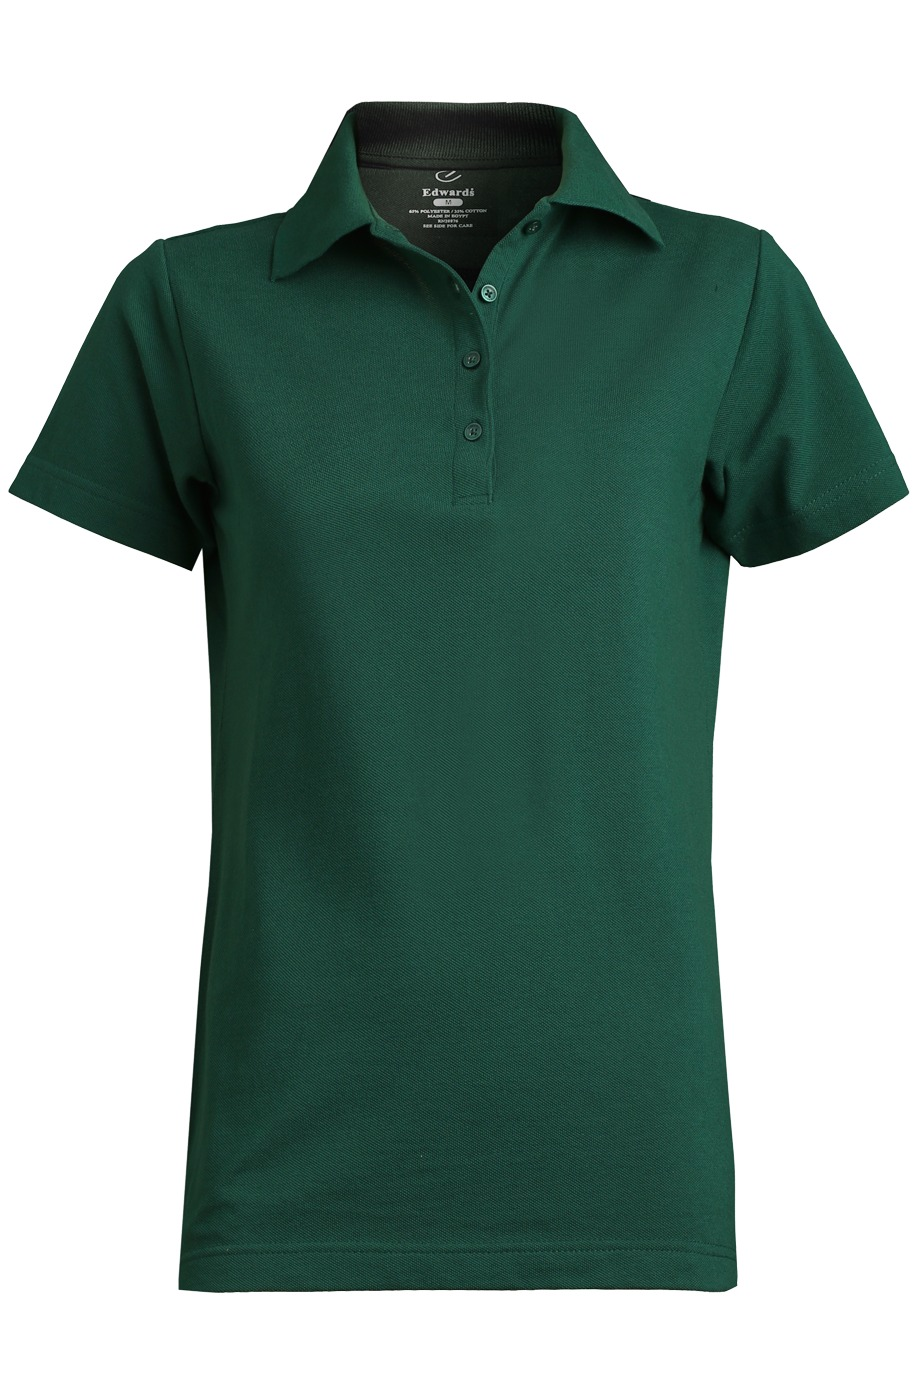 Edwards Garment 5500 - Women's Soft Blended Pique Polo